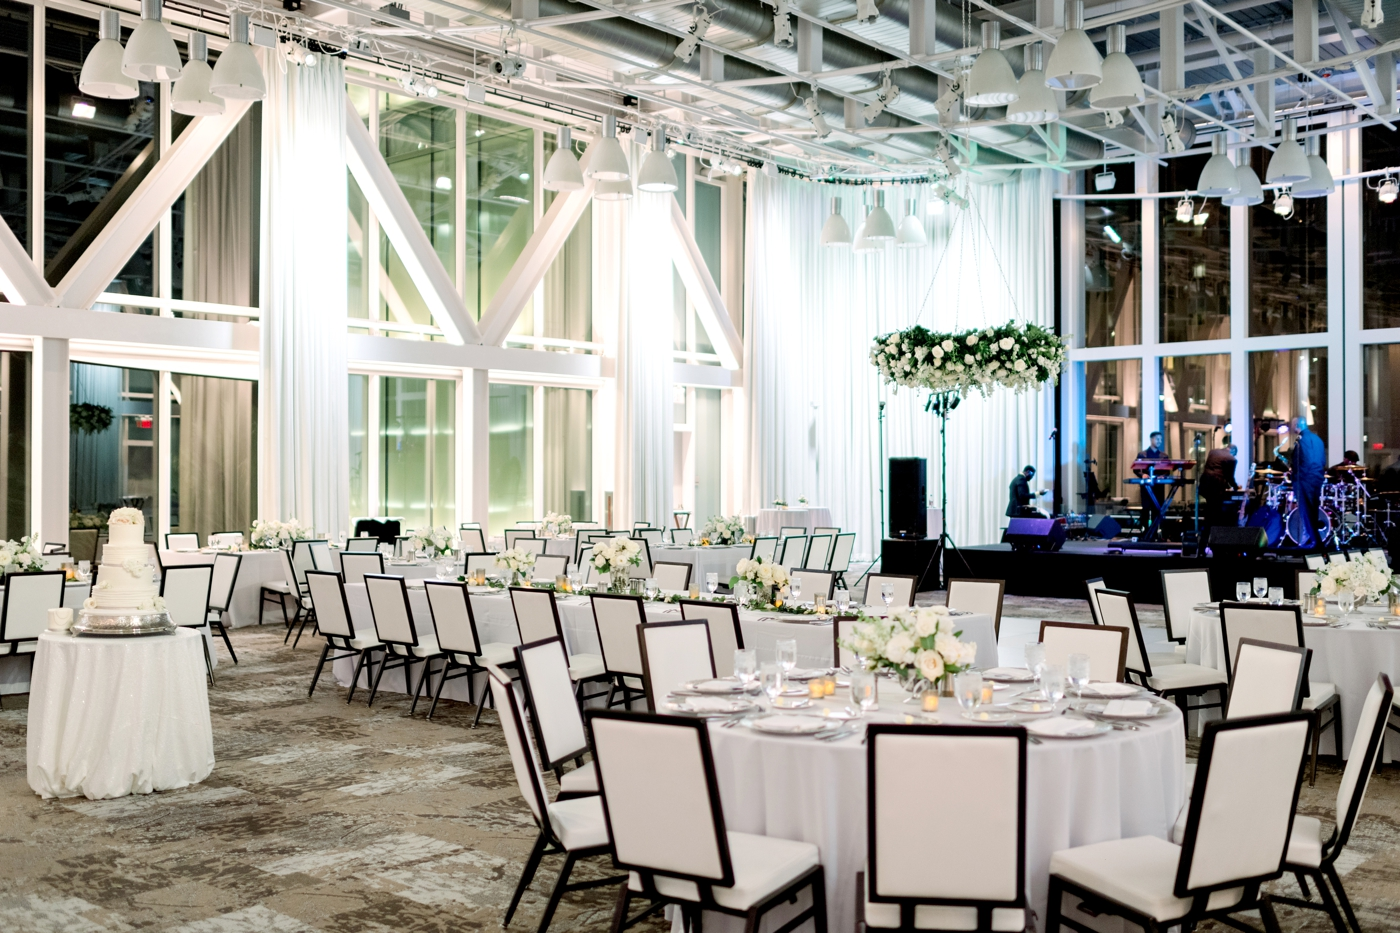 dr. phillips center wedding reception venue